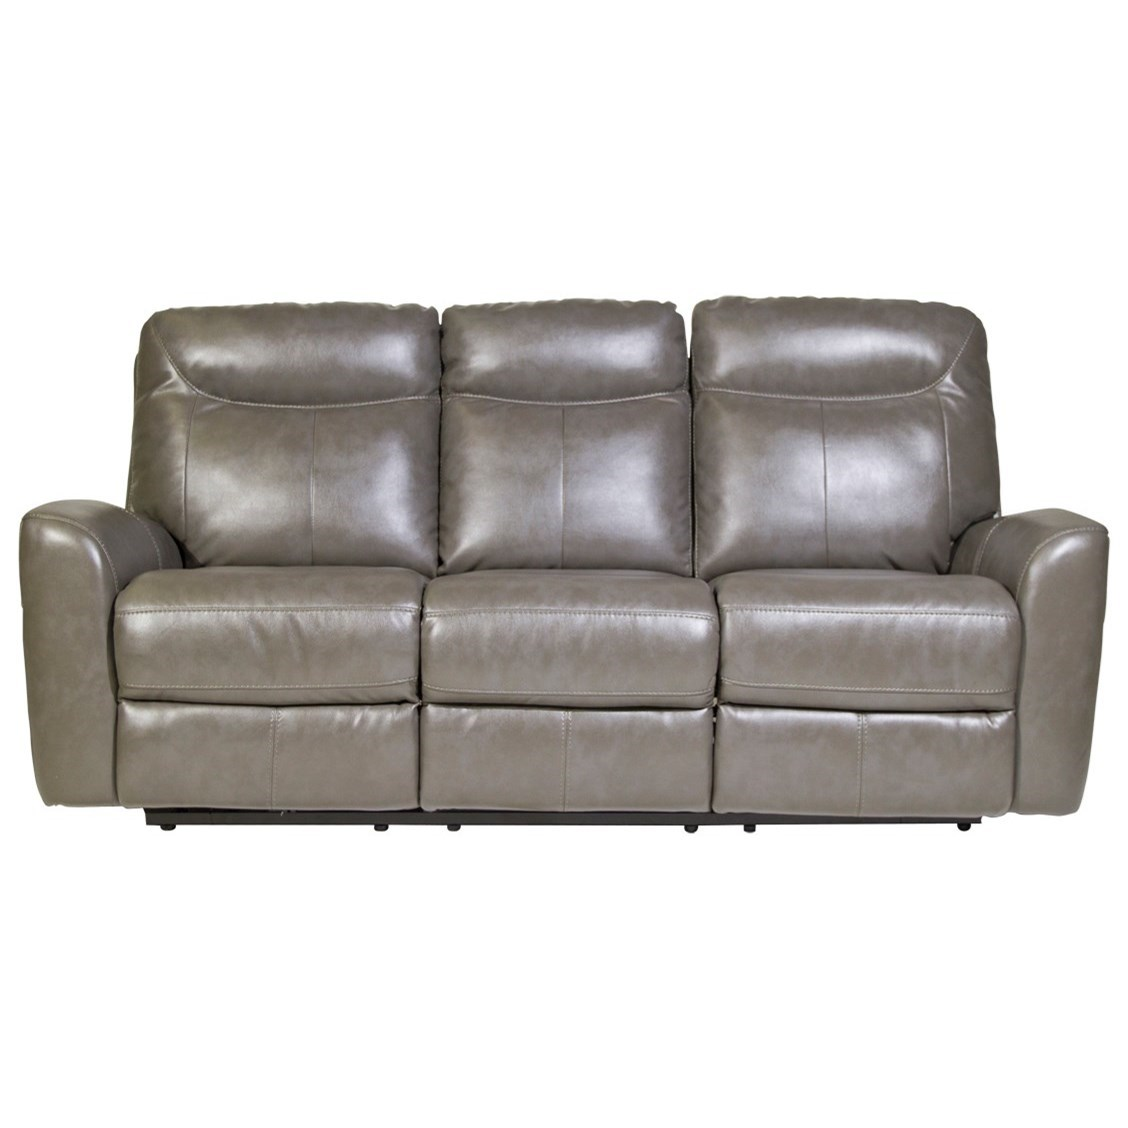 Violino Broadway Power Reclining Sofa   Item Number: 30914EM FK 3P